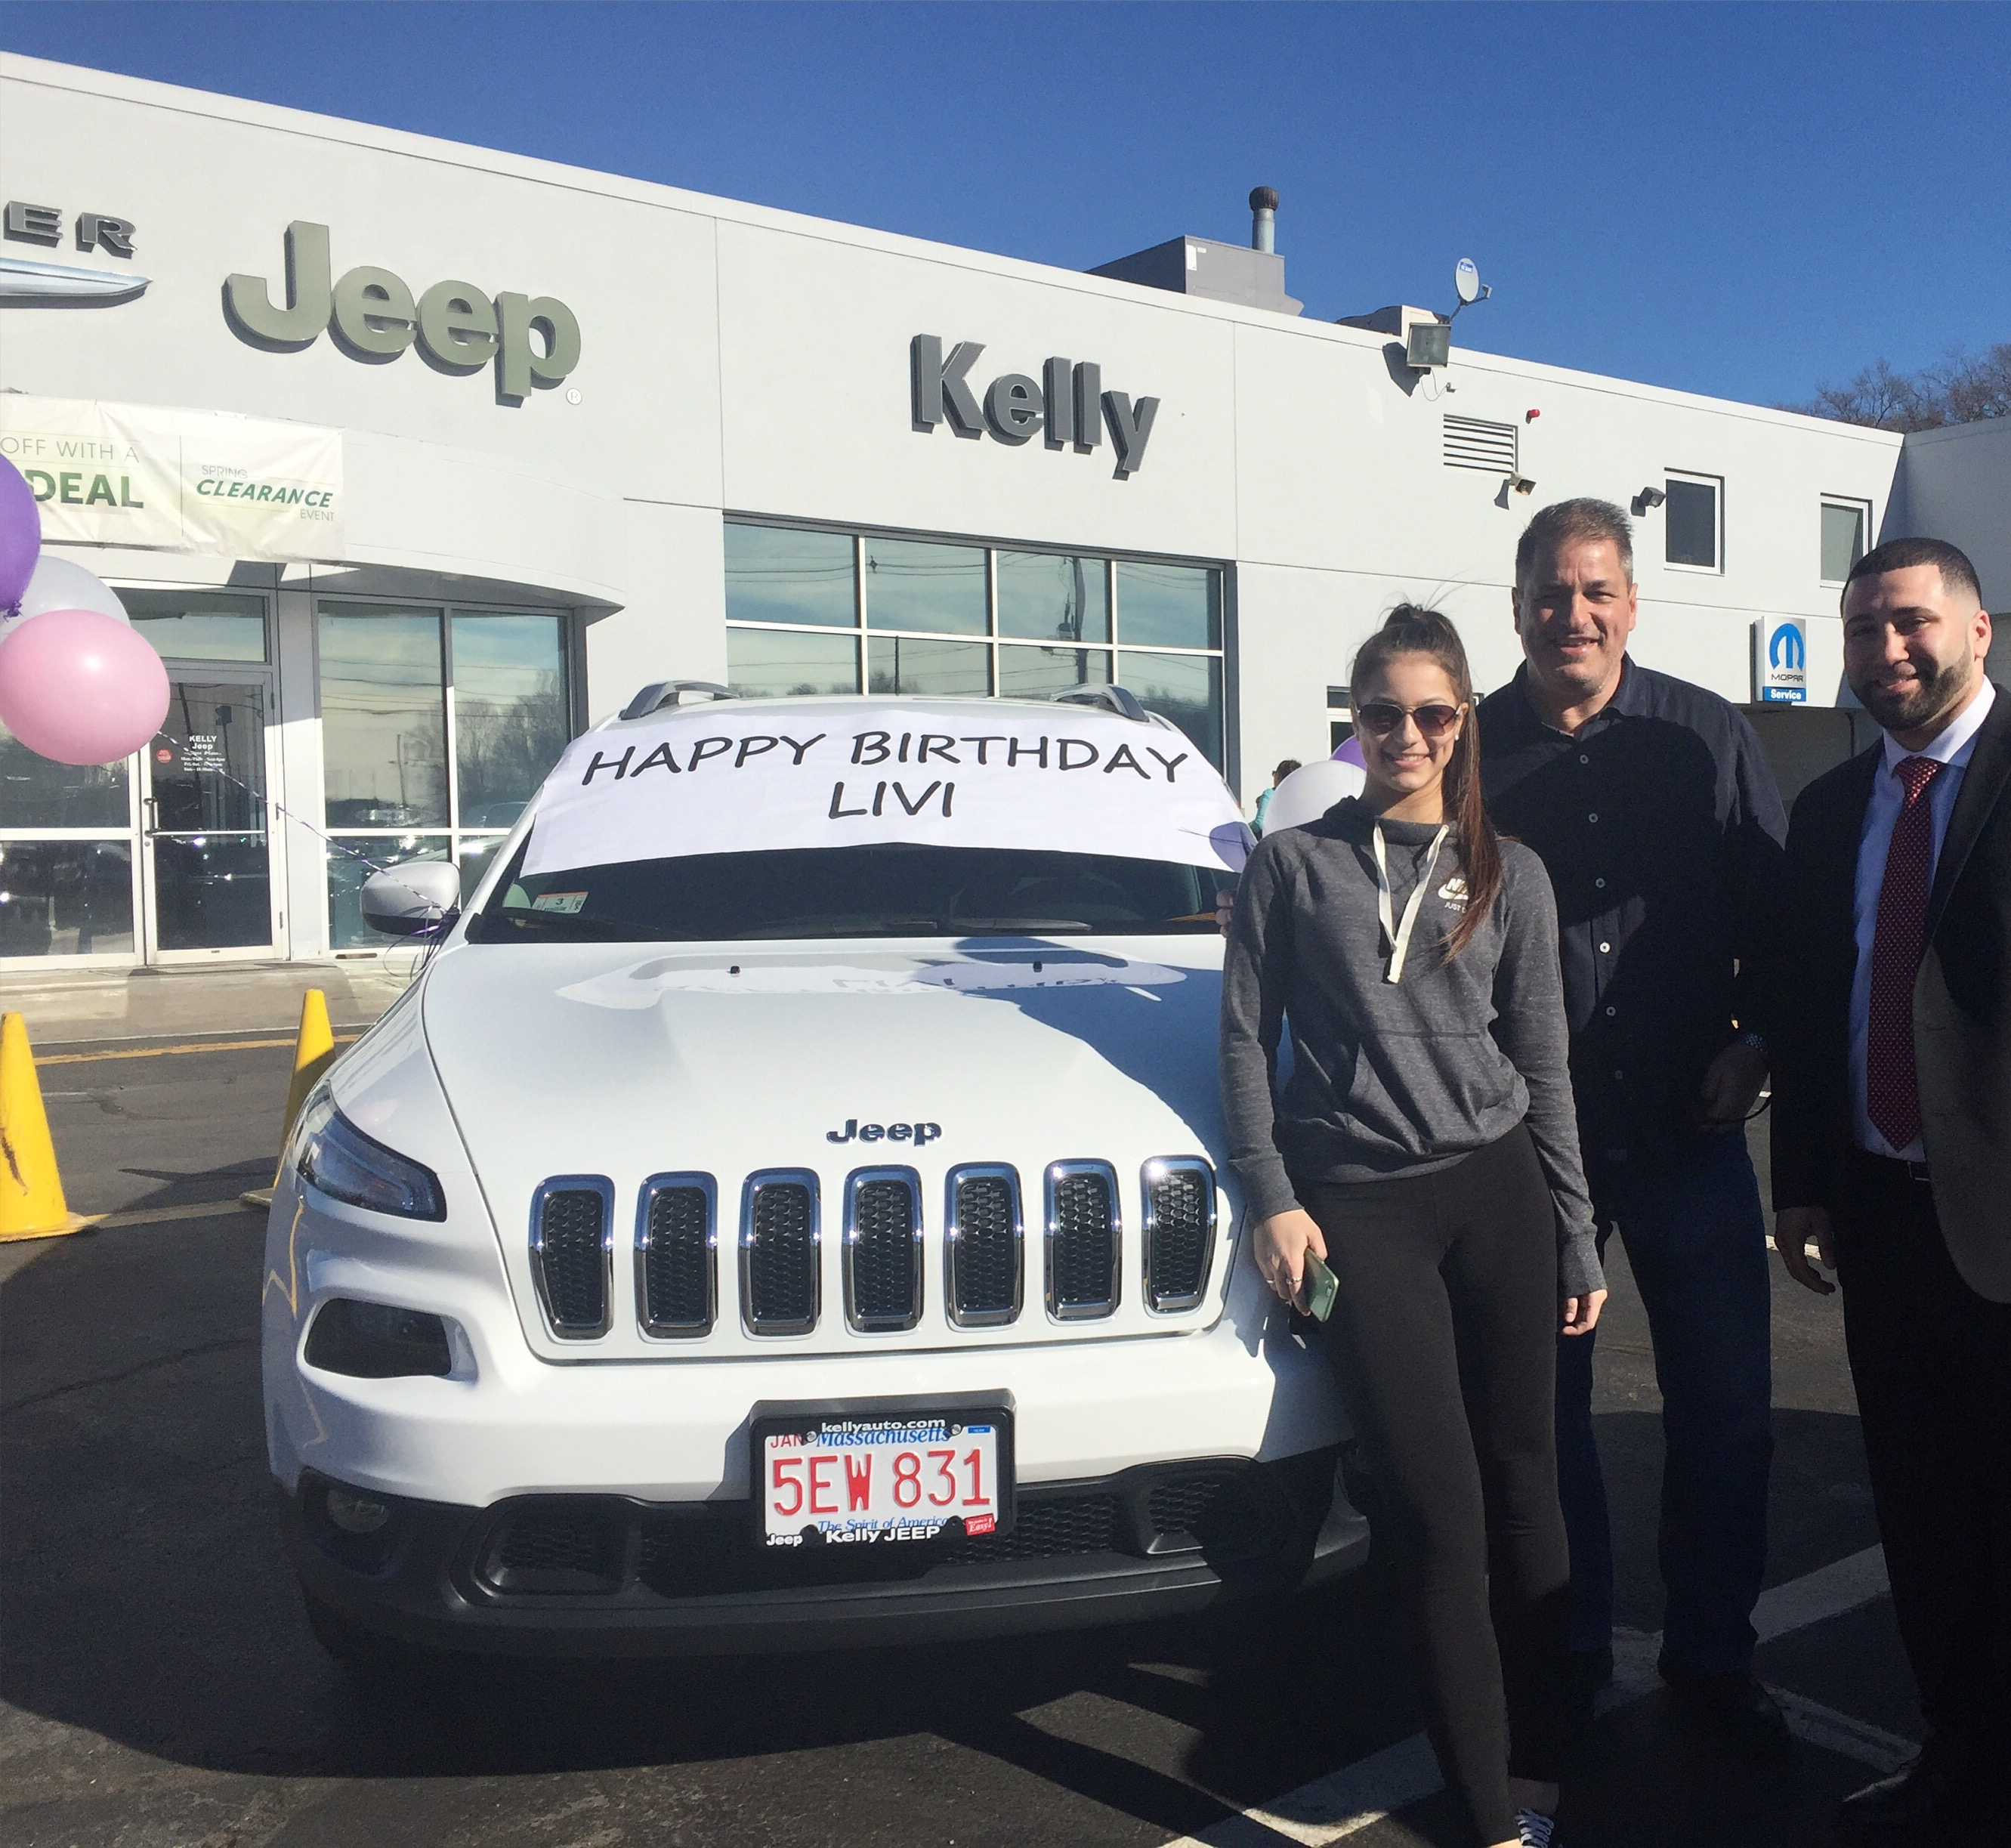 Kelly Jeep Chrysler Coupons near me in Lynnfield | 8coupons